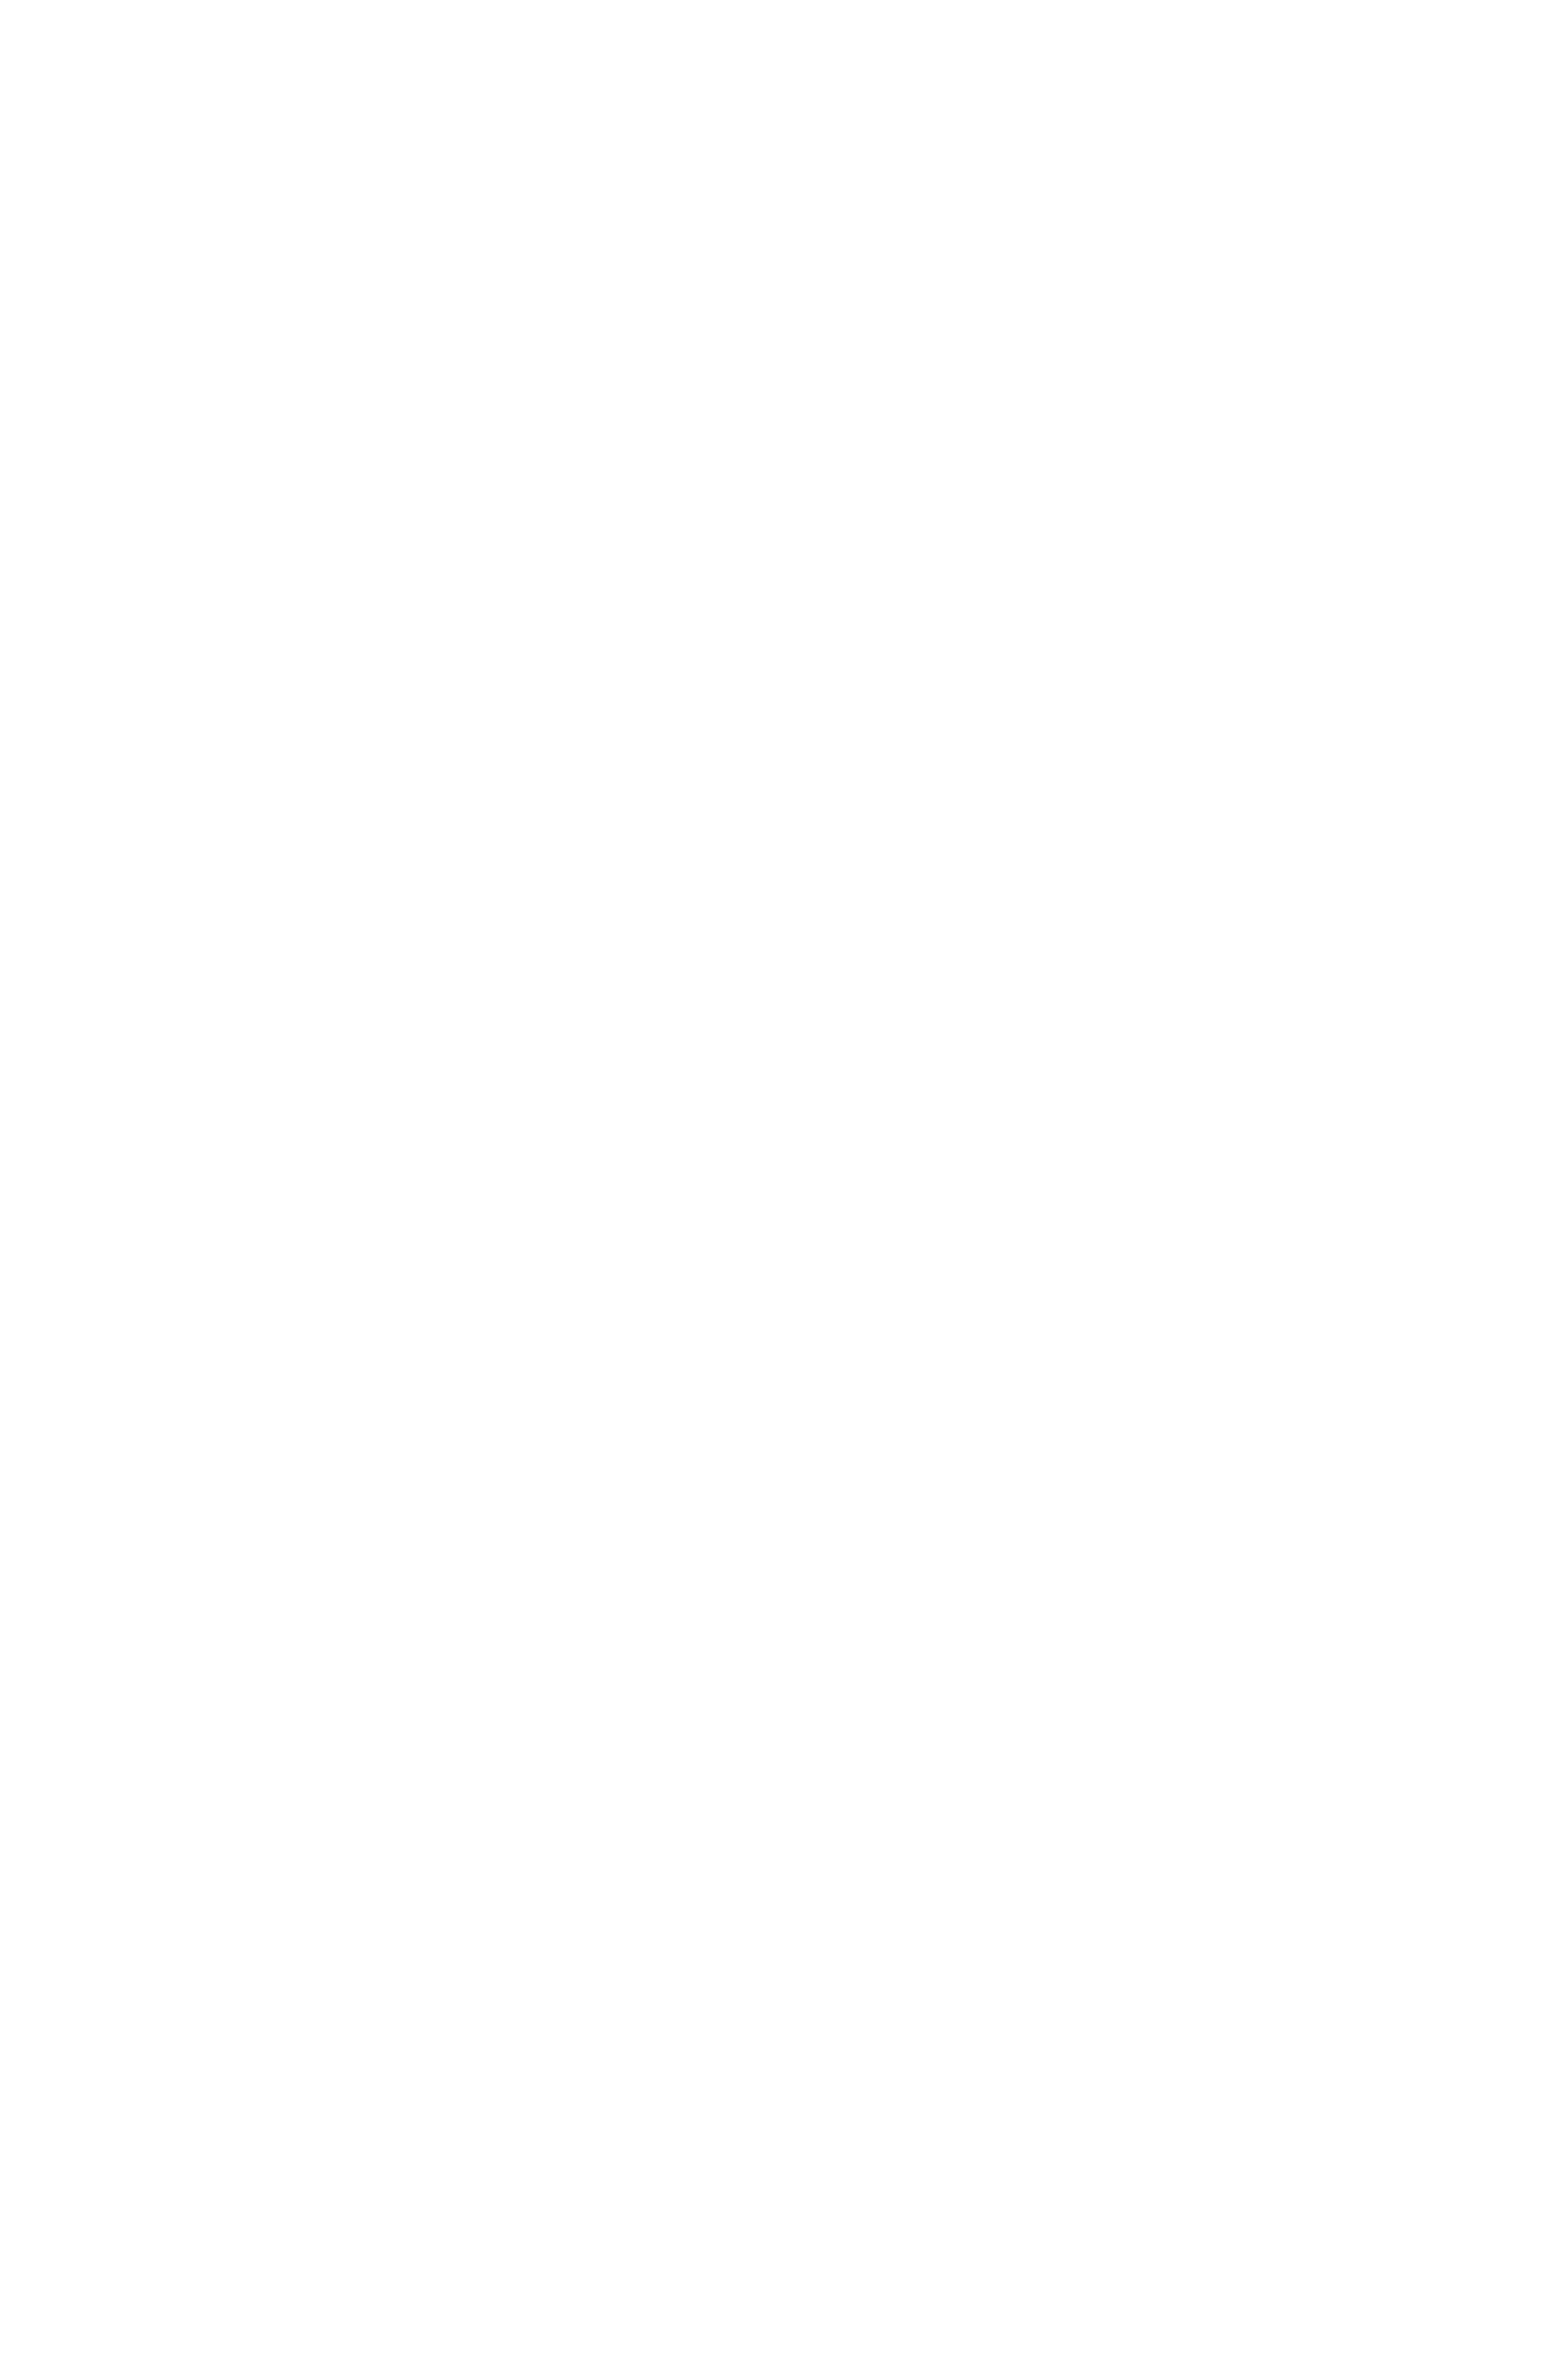 NIPPONIA HOTEL 奈良ならまち VALUE MANAGEMENT GROUP